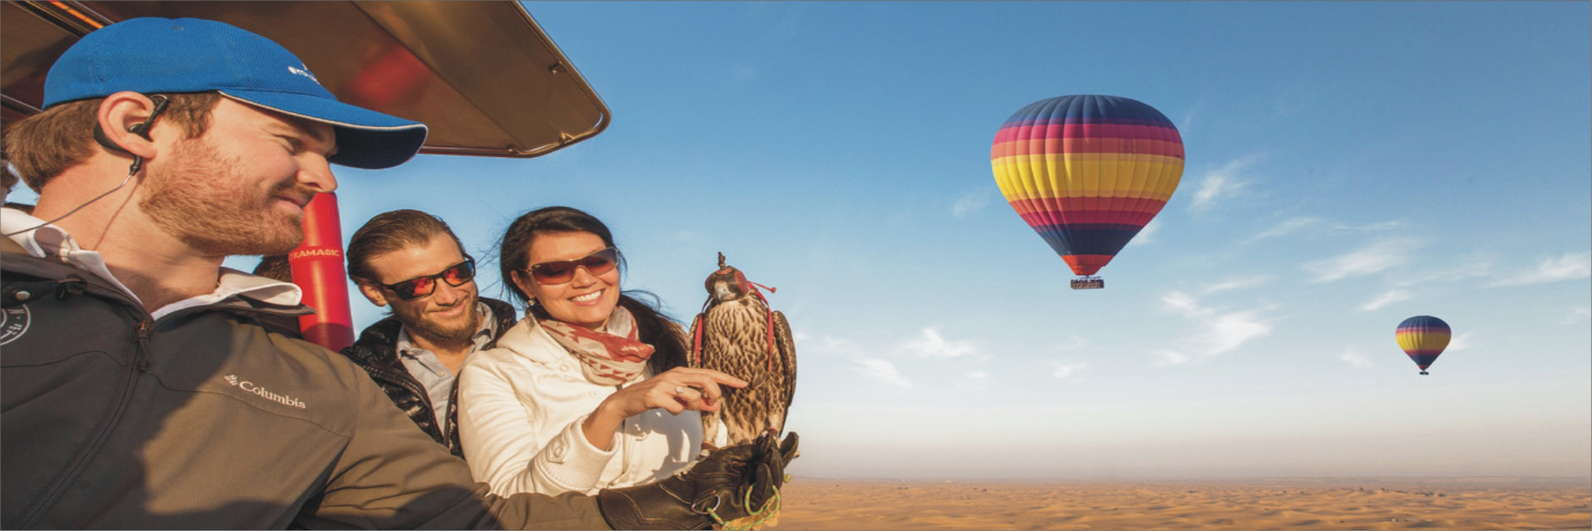 Early Morning Hot Air Balloon Tour with Breakfast